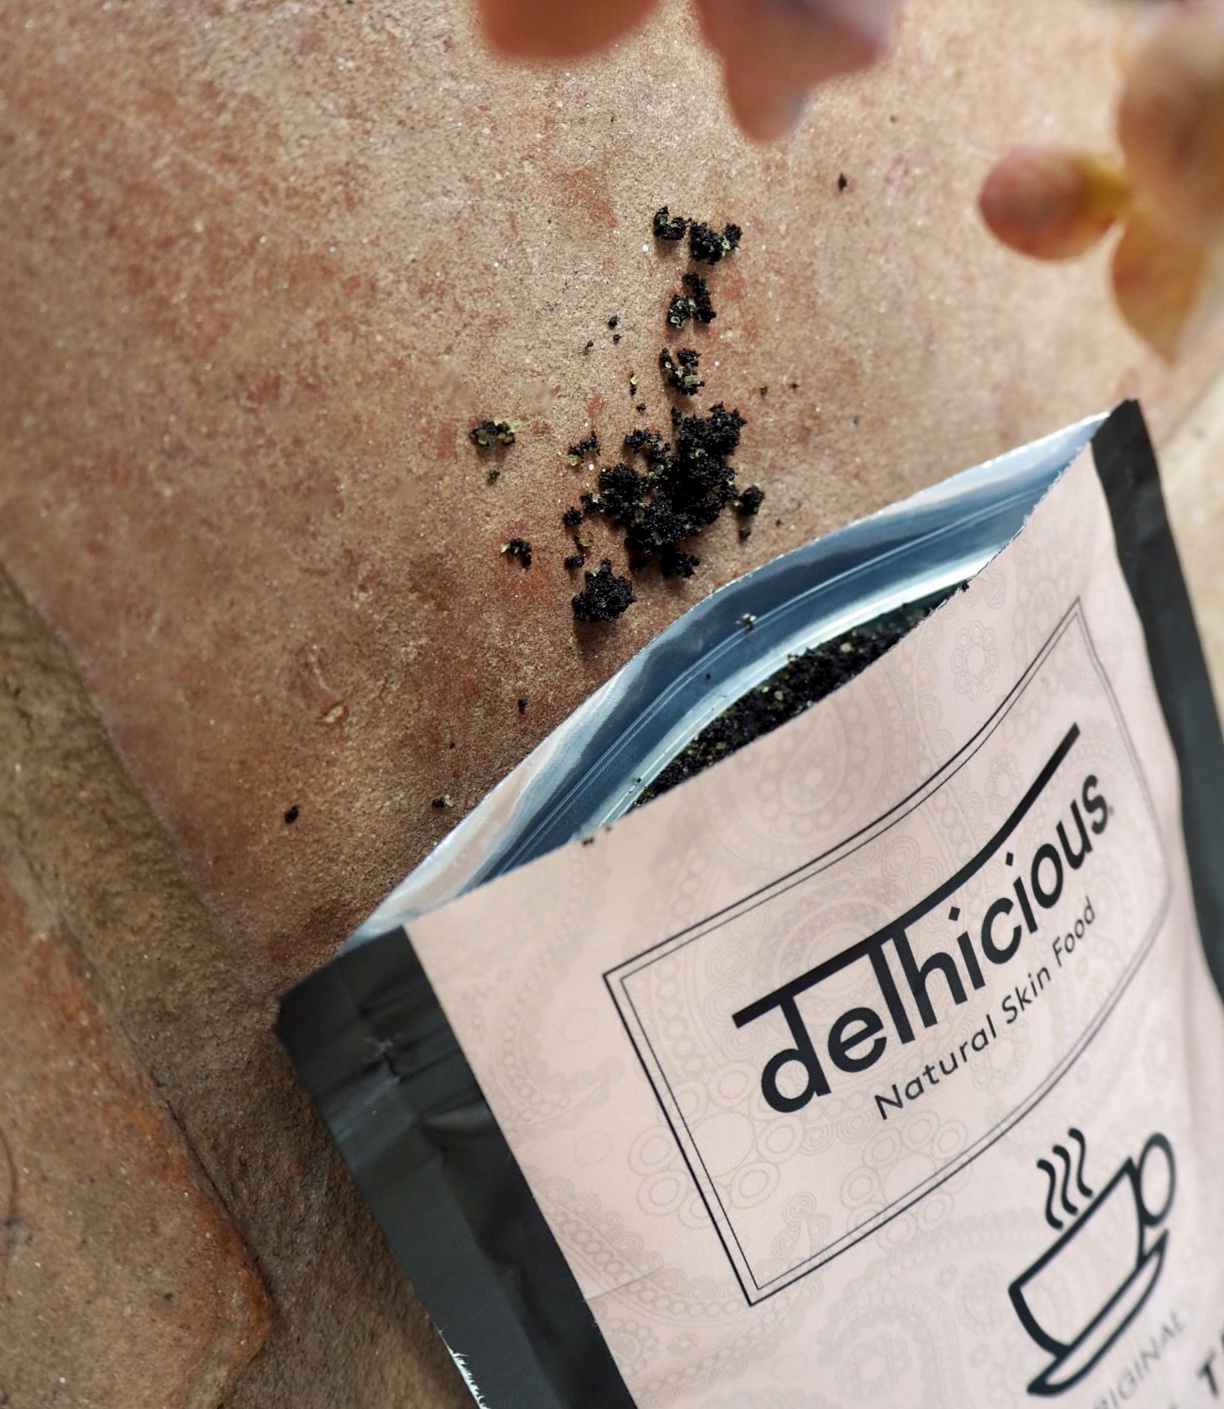 Delhicious black tea body scrub